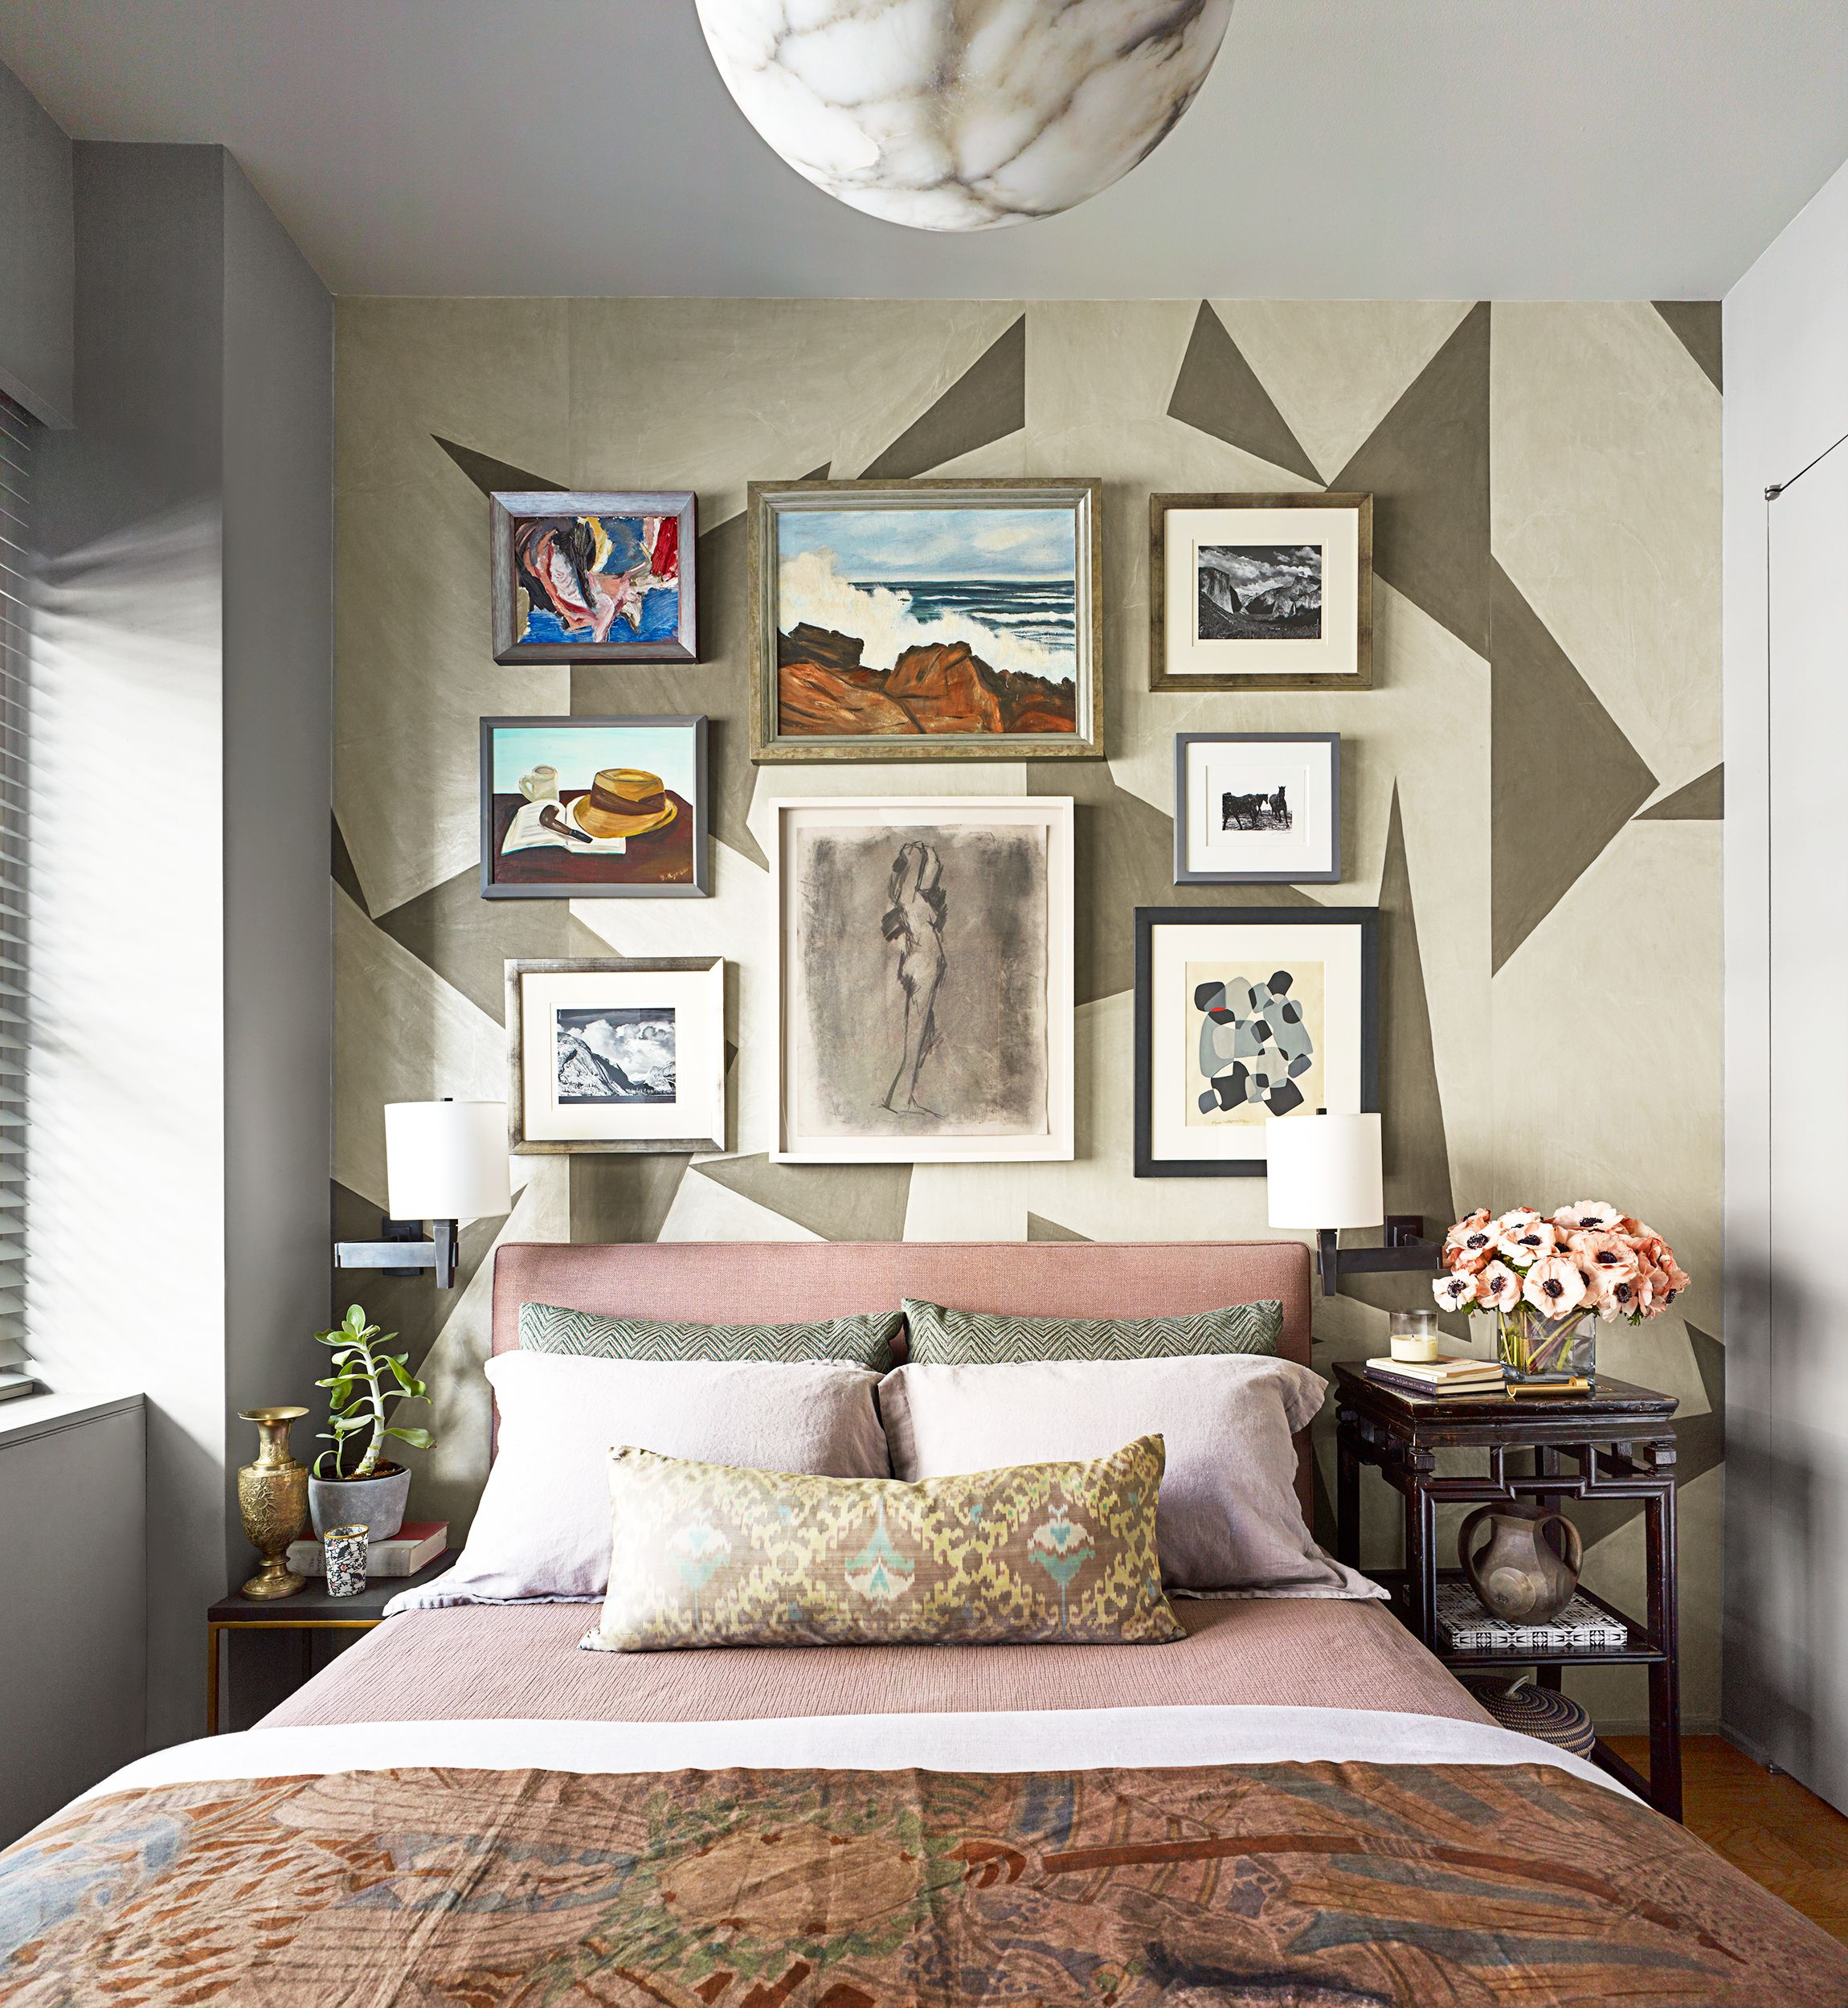 25 Small Bedroom Design Ideas - How To Decorate A Small Bedroom pertaining to Bedroom Furniture For Small Rooms